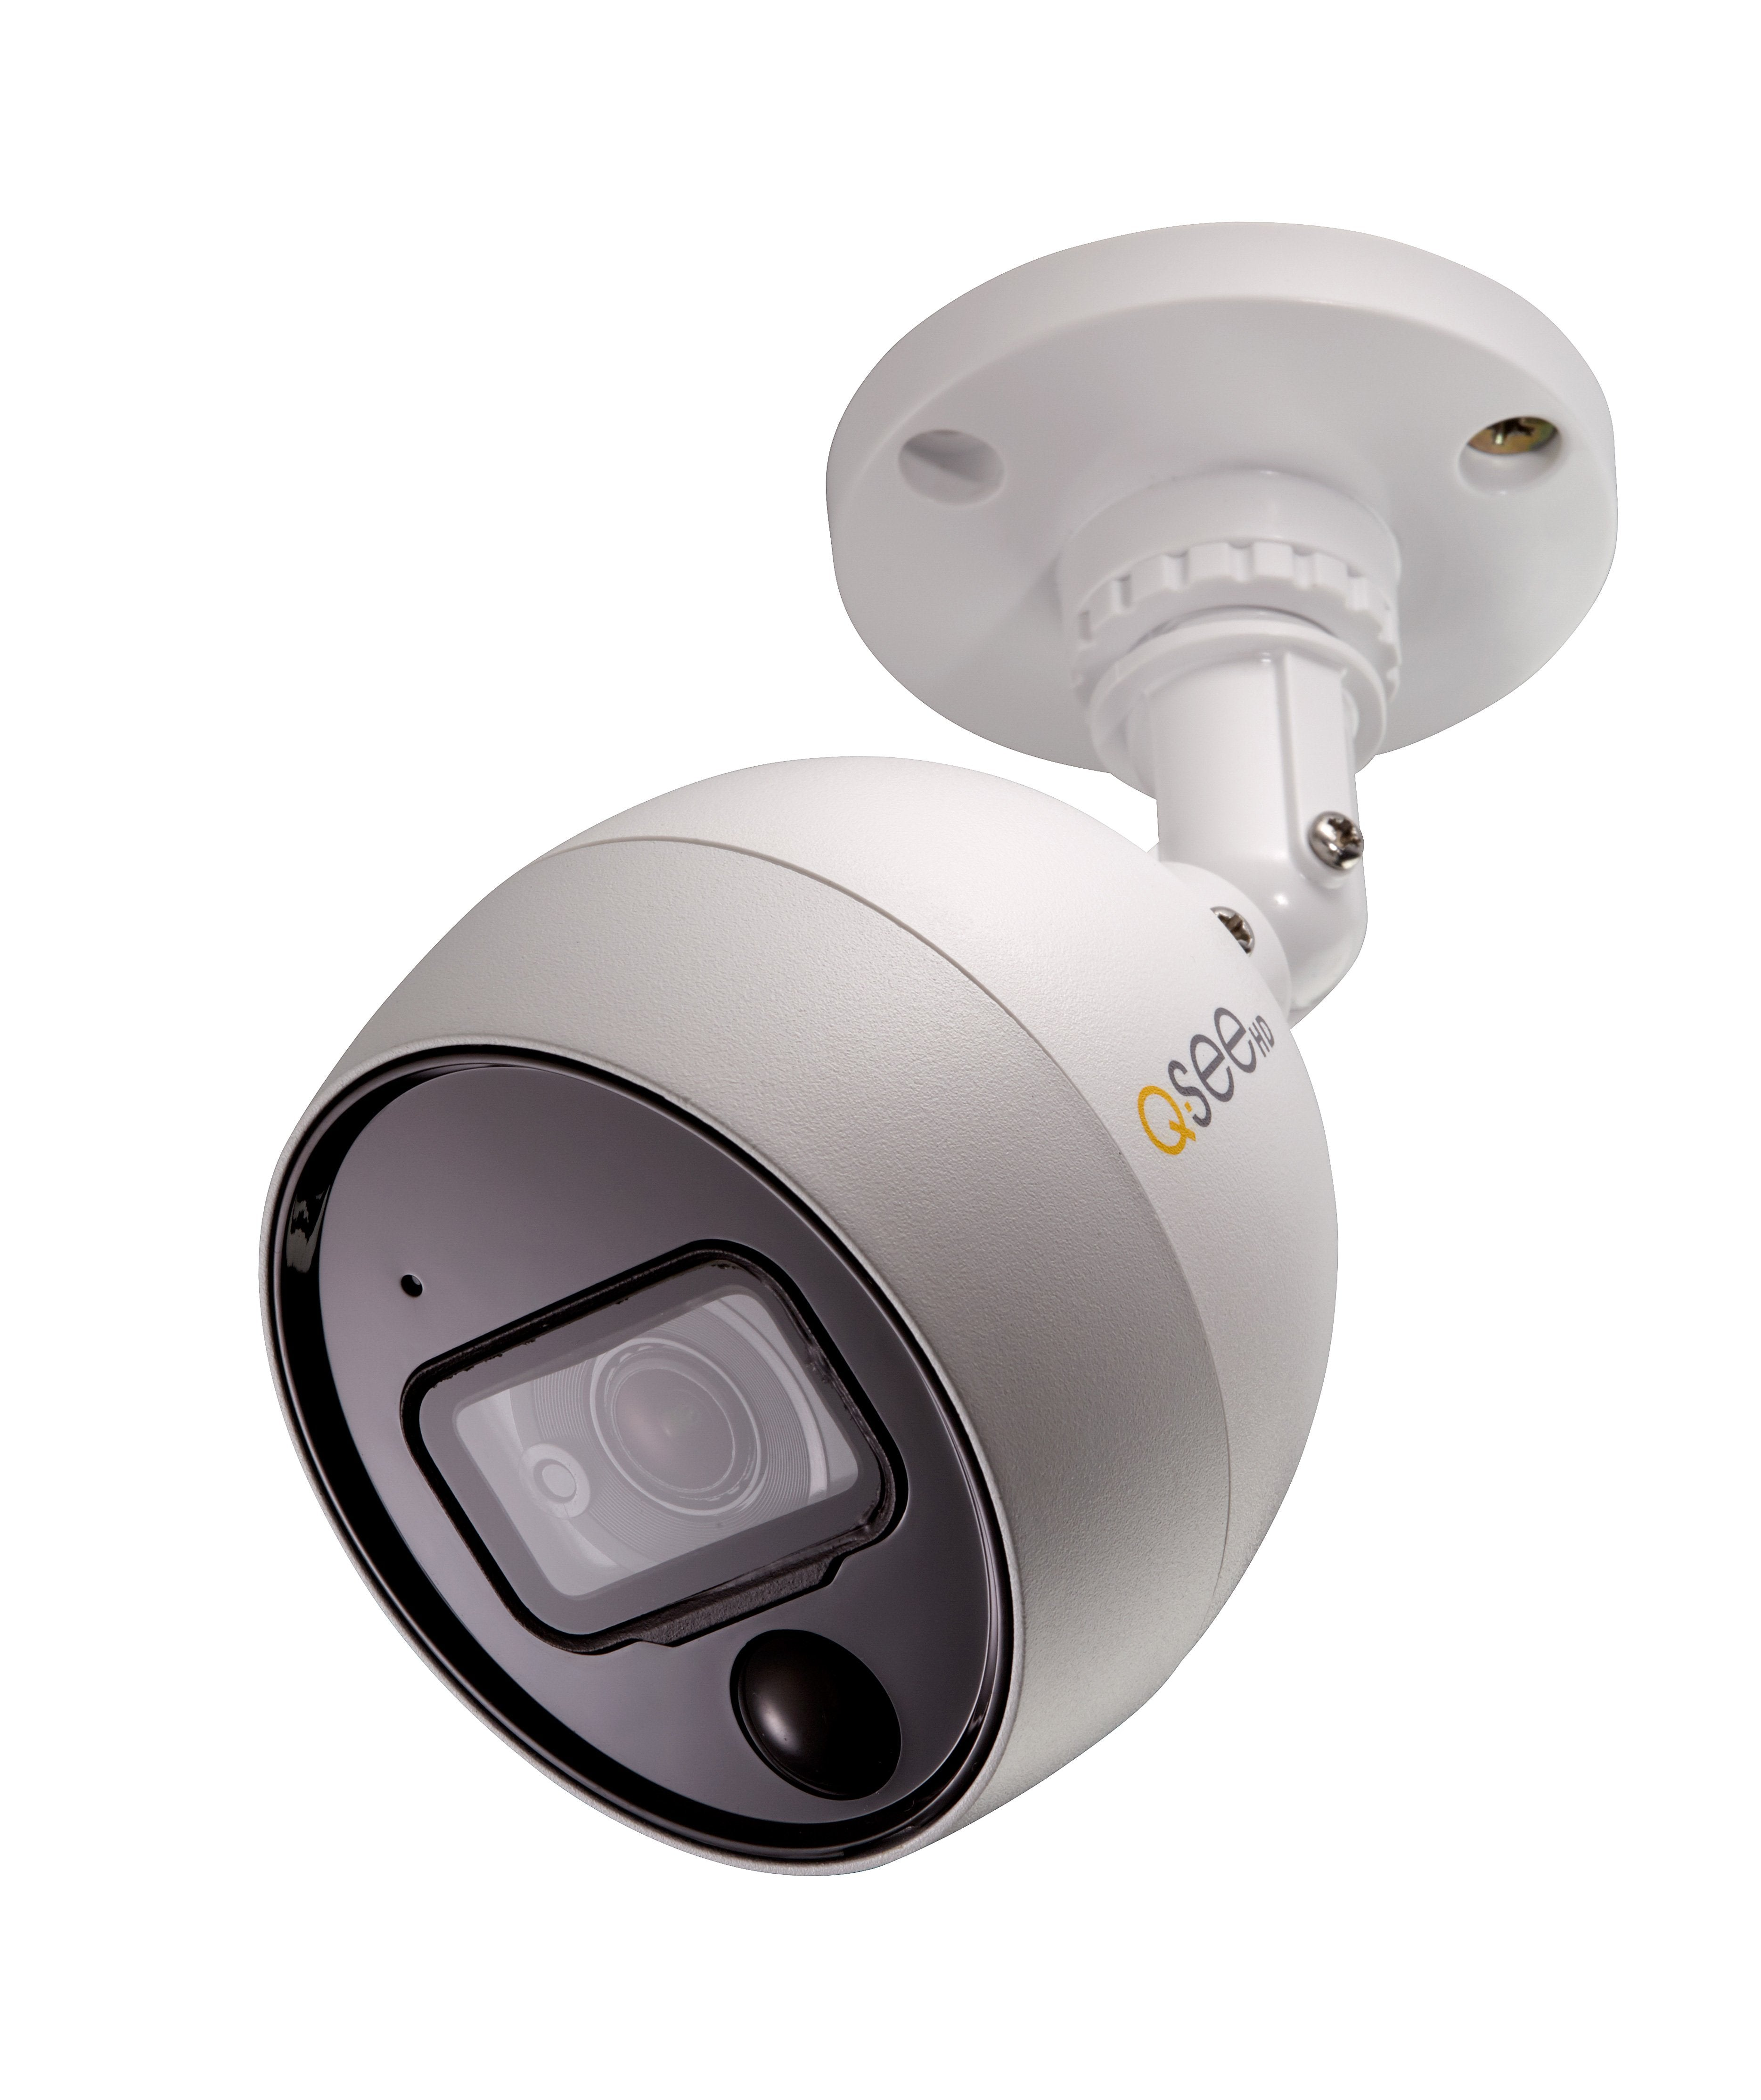 4K Ultra Analog HD Bullet Security Camera with PIR Technology (QCA8095B) Analog HD Camera  - Q-See